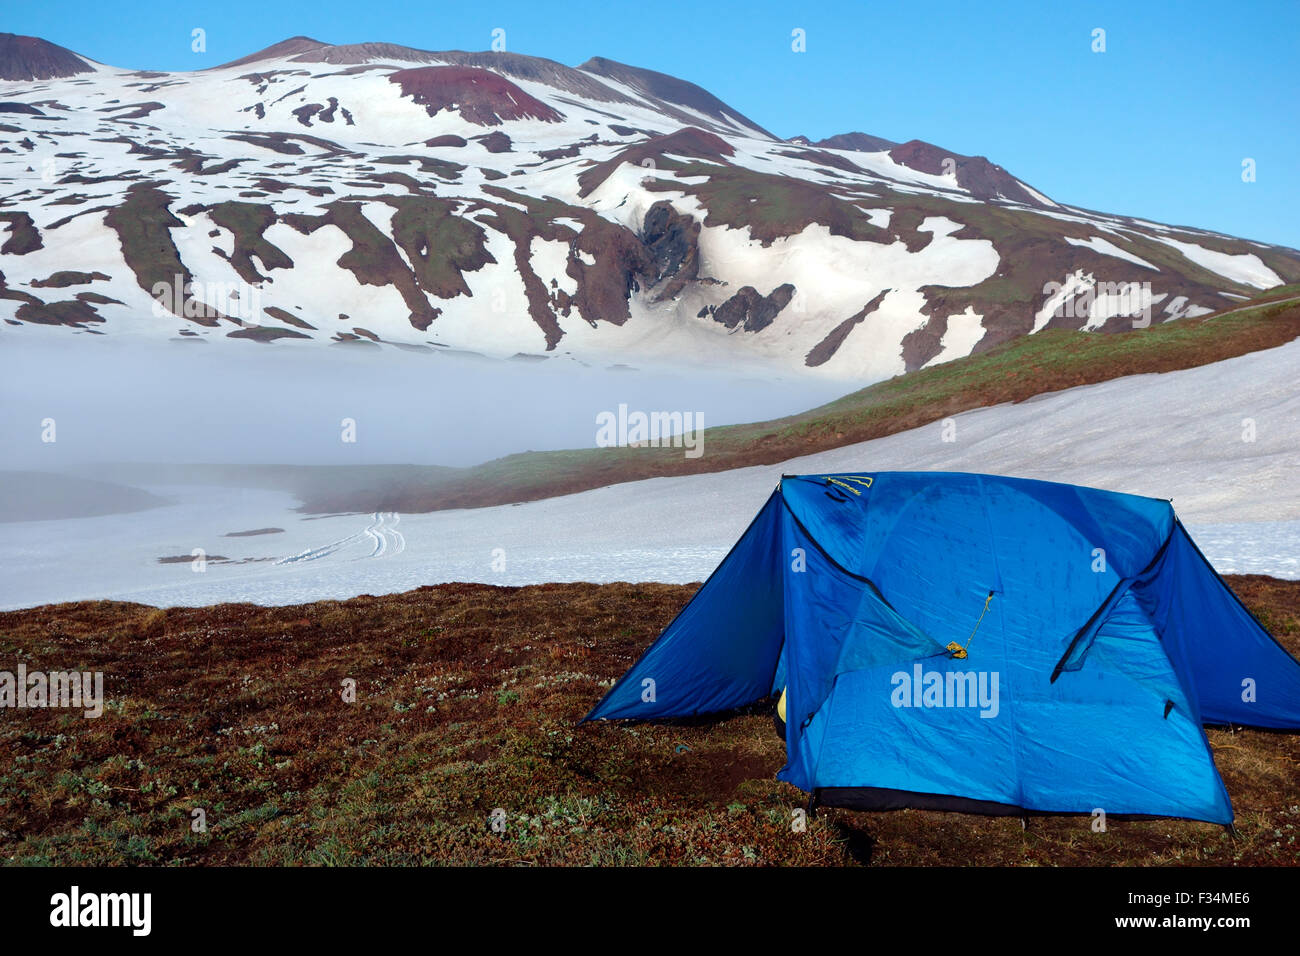 Tent at the foot of Gorely volcano, Kamchatka Peninsula, Russia - Stock Image